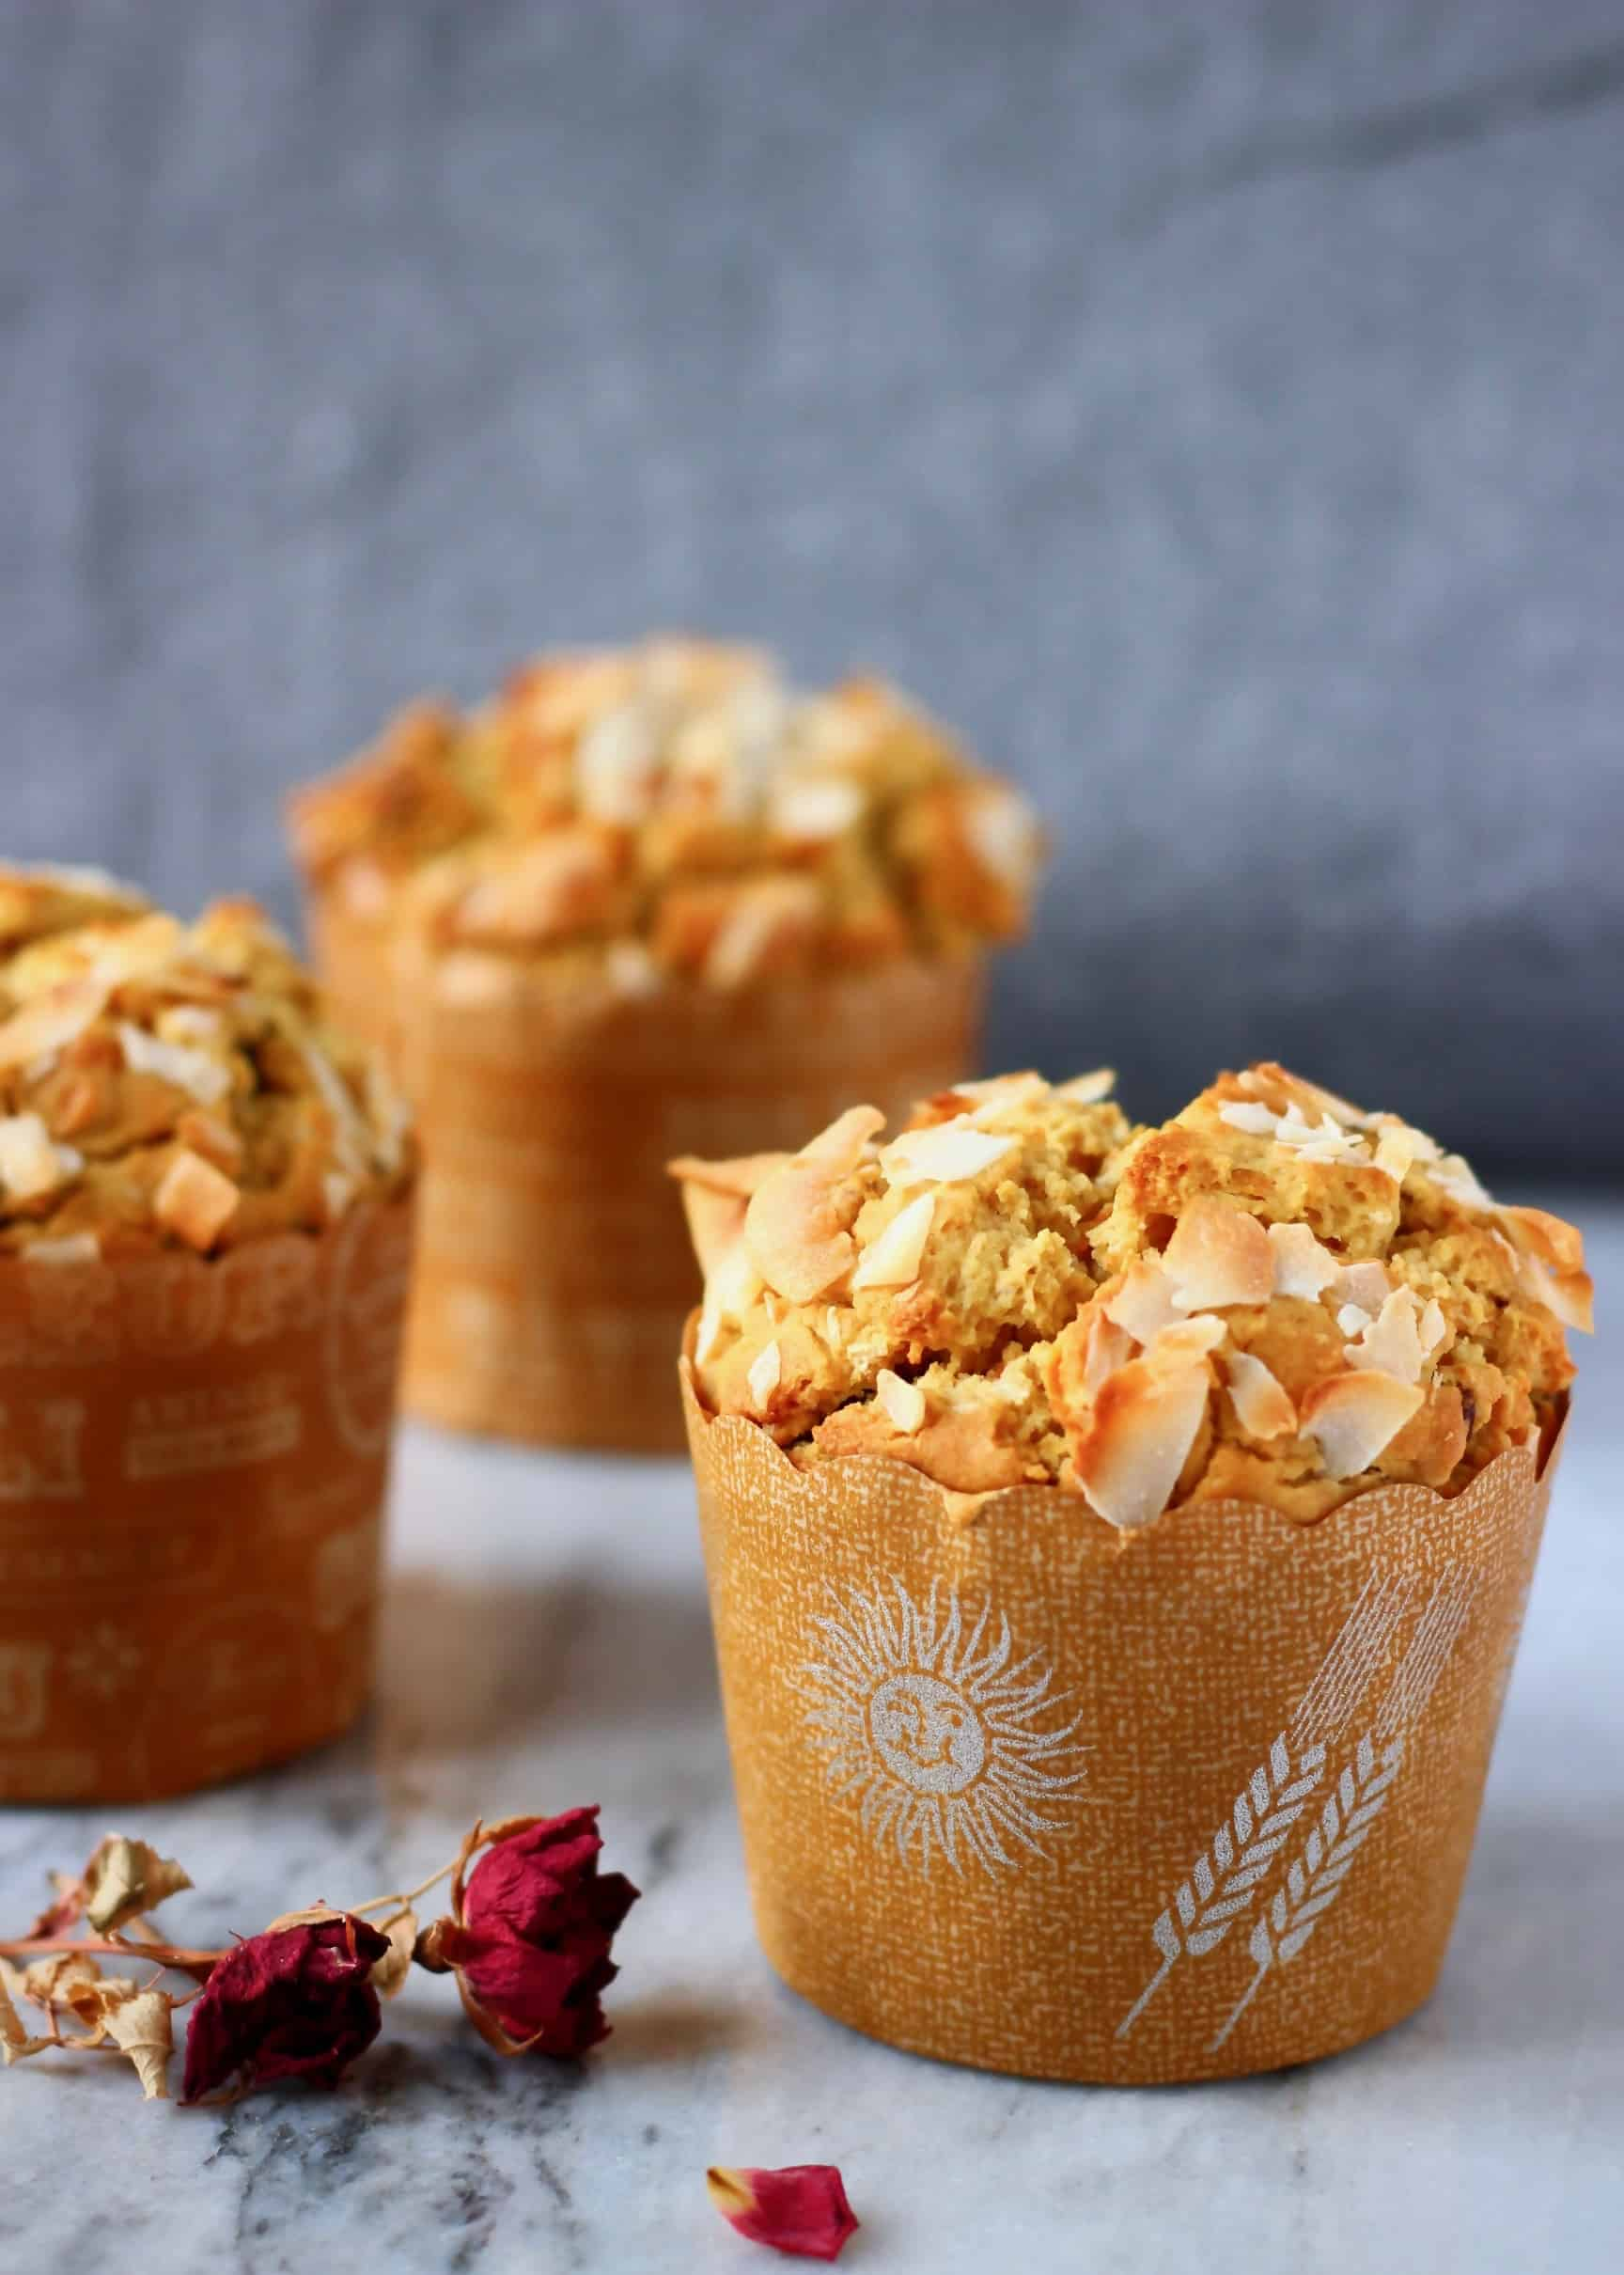 Three carrot muffins topped with coconut flakes on a marble slab decorated with dried roses